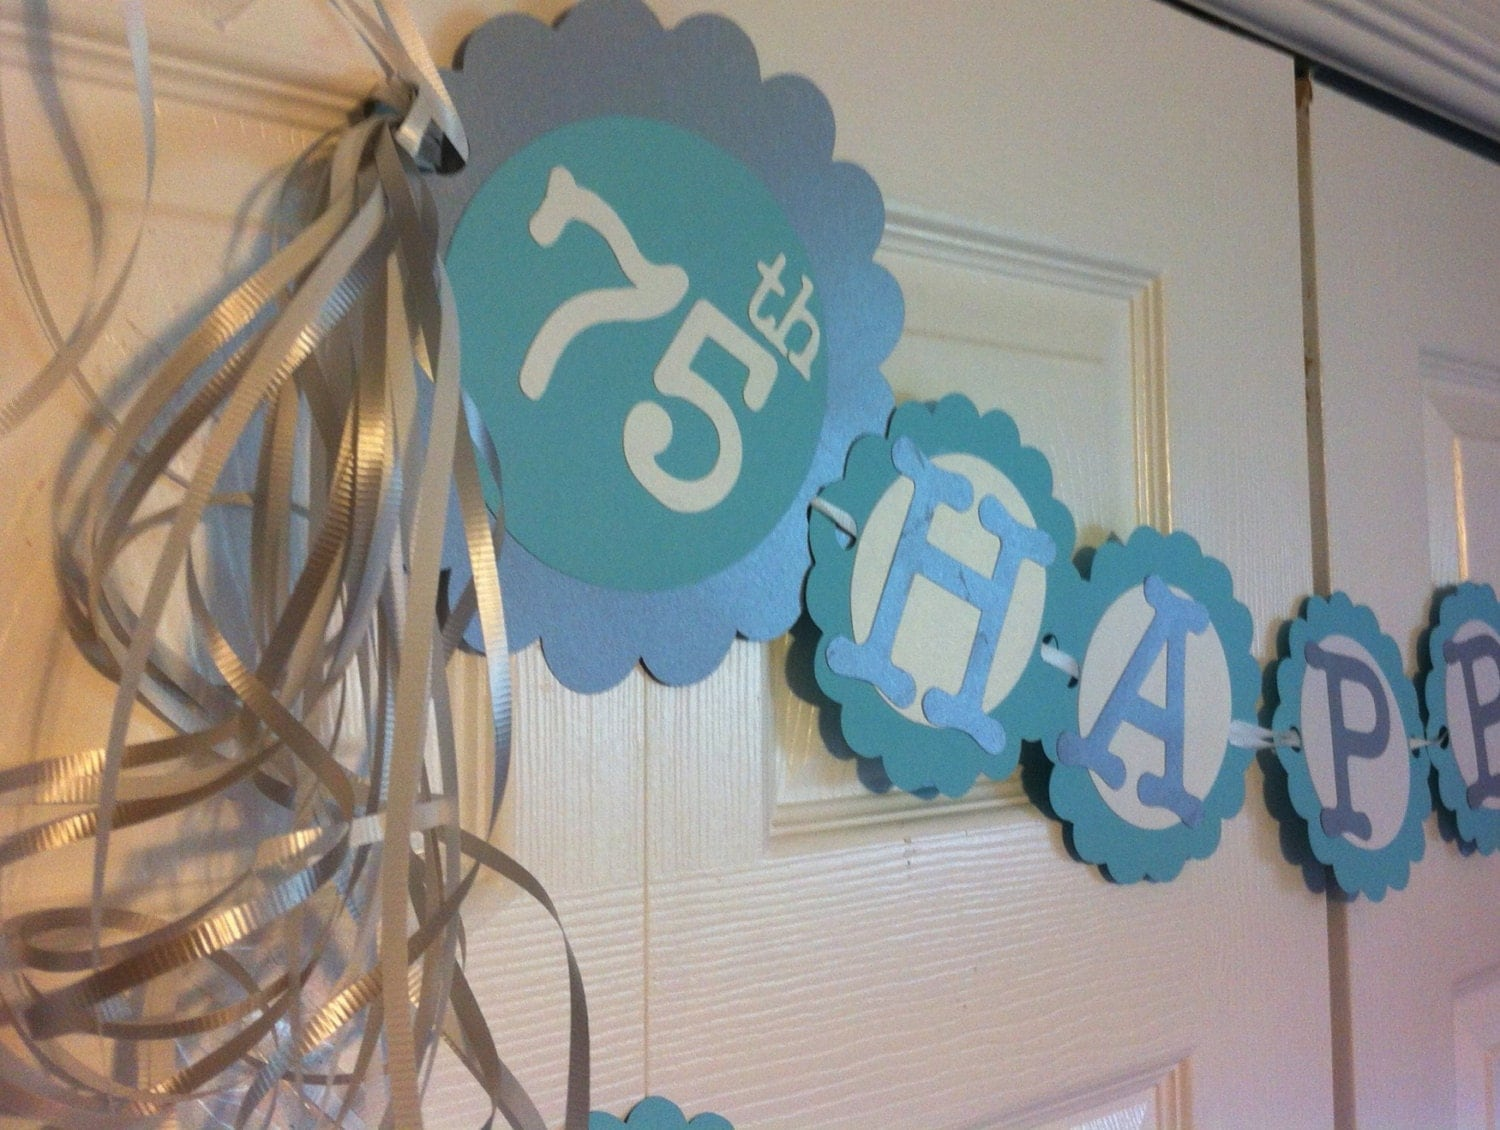 75th birthday decorations personalization available by